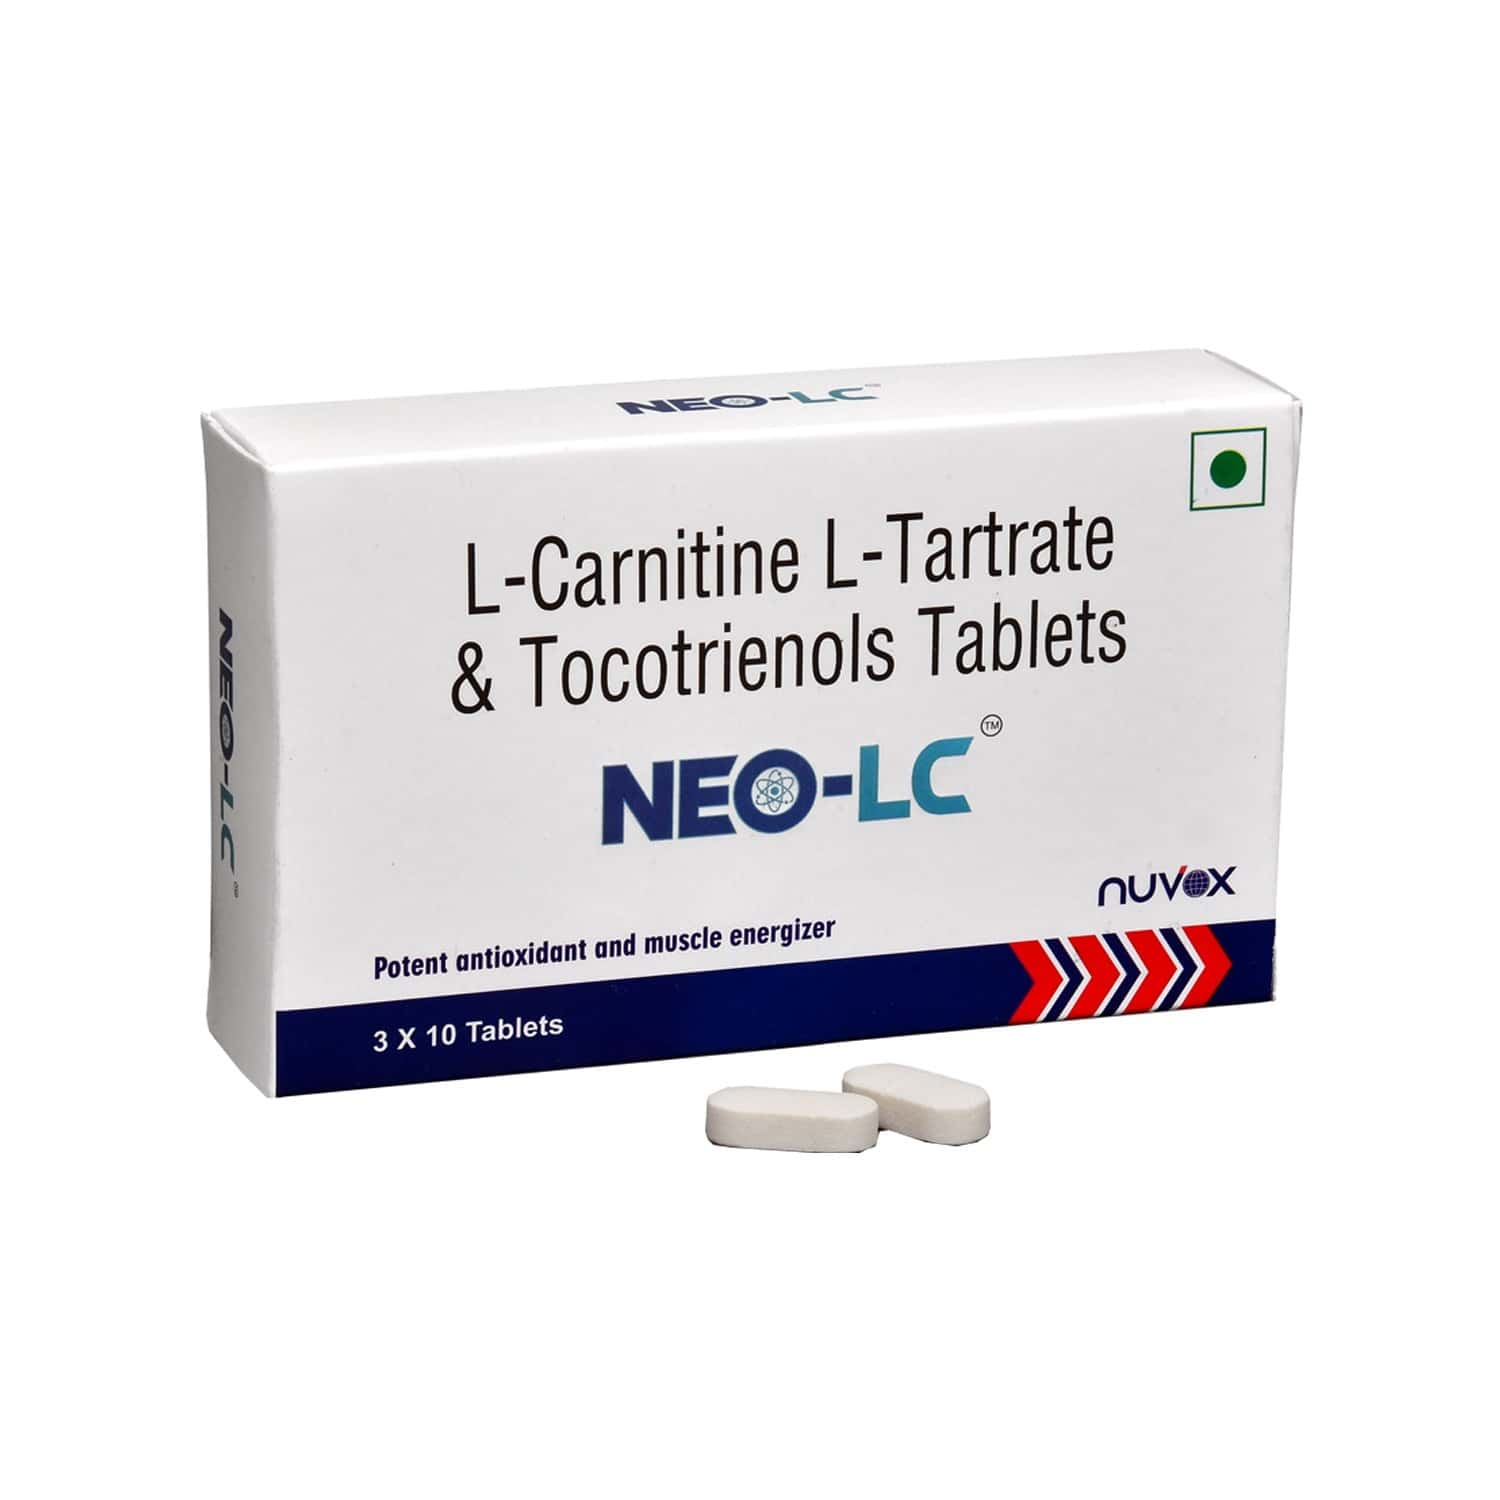 Nuvox Neo-lc L-carnitine, L-tartrate 500 Mg & Tocotrenols 60 Mg Muscle Cramp Tablet (3 X 10 Tablets)